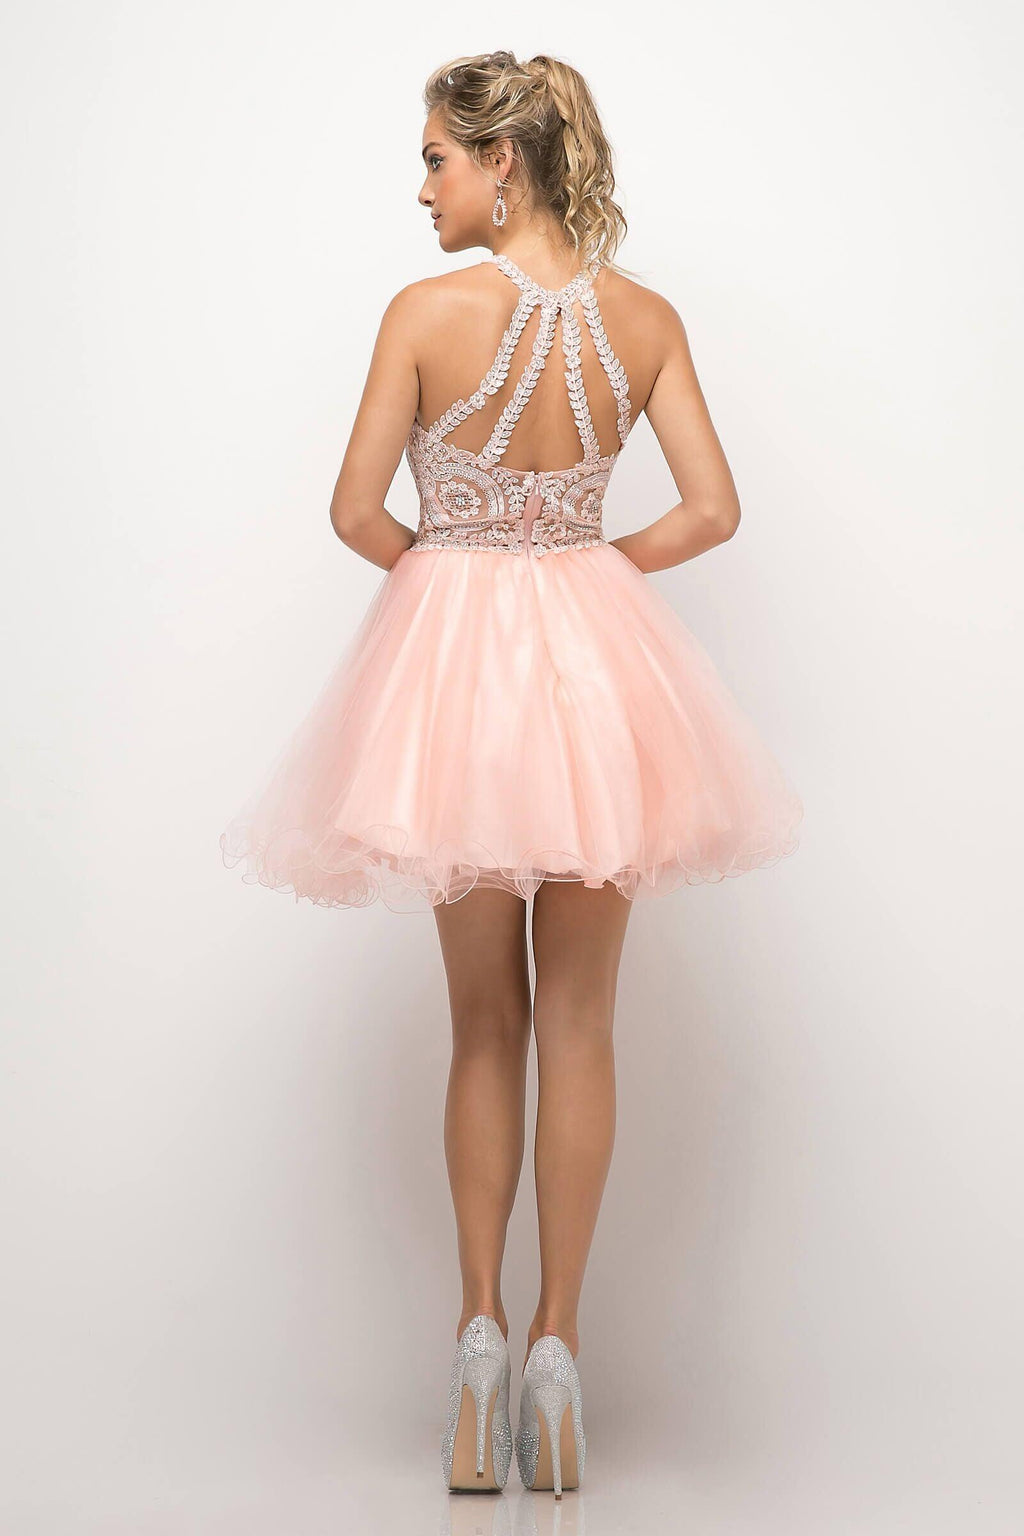 Short Prom Halter Neck Homecoming Dress - The Dress Outlet  May Queen